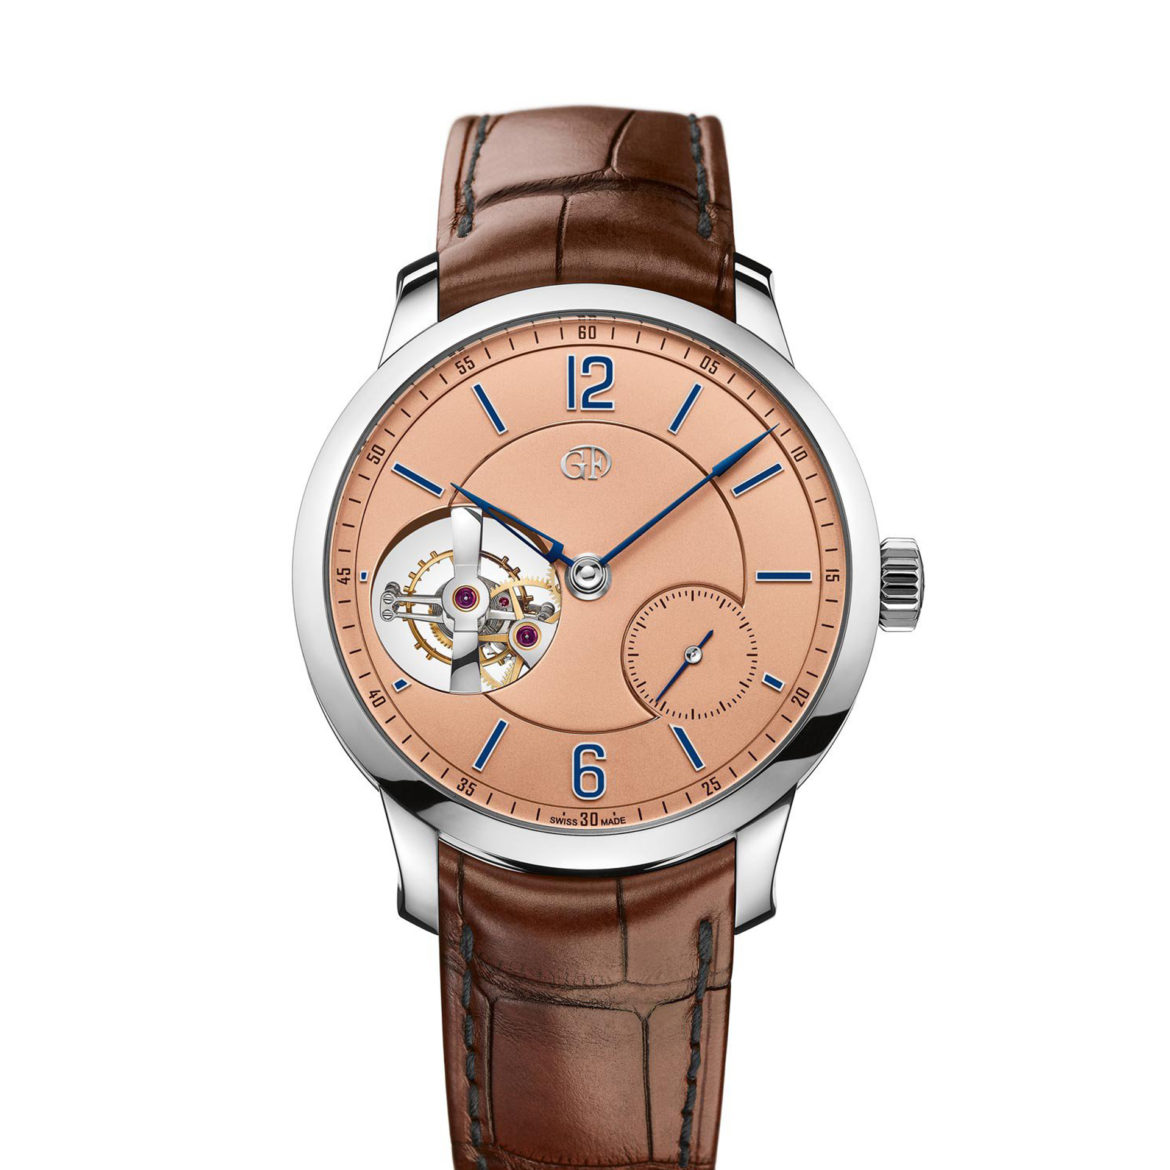 Greubel Forsey Tourbillon 24 Seconds Vision Platinum with salmon dial